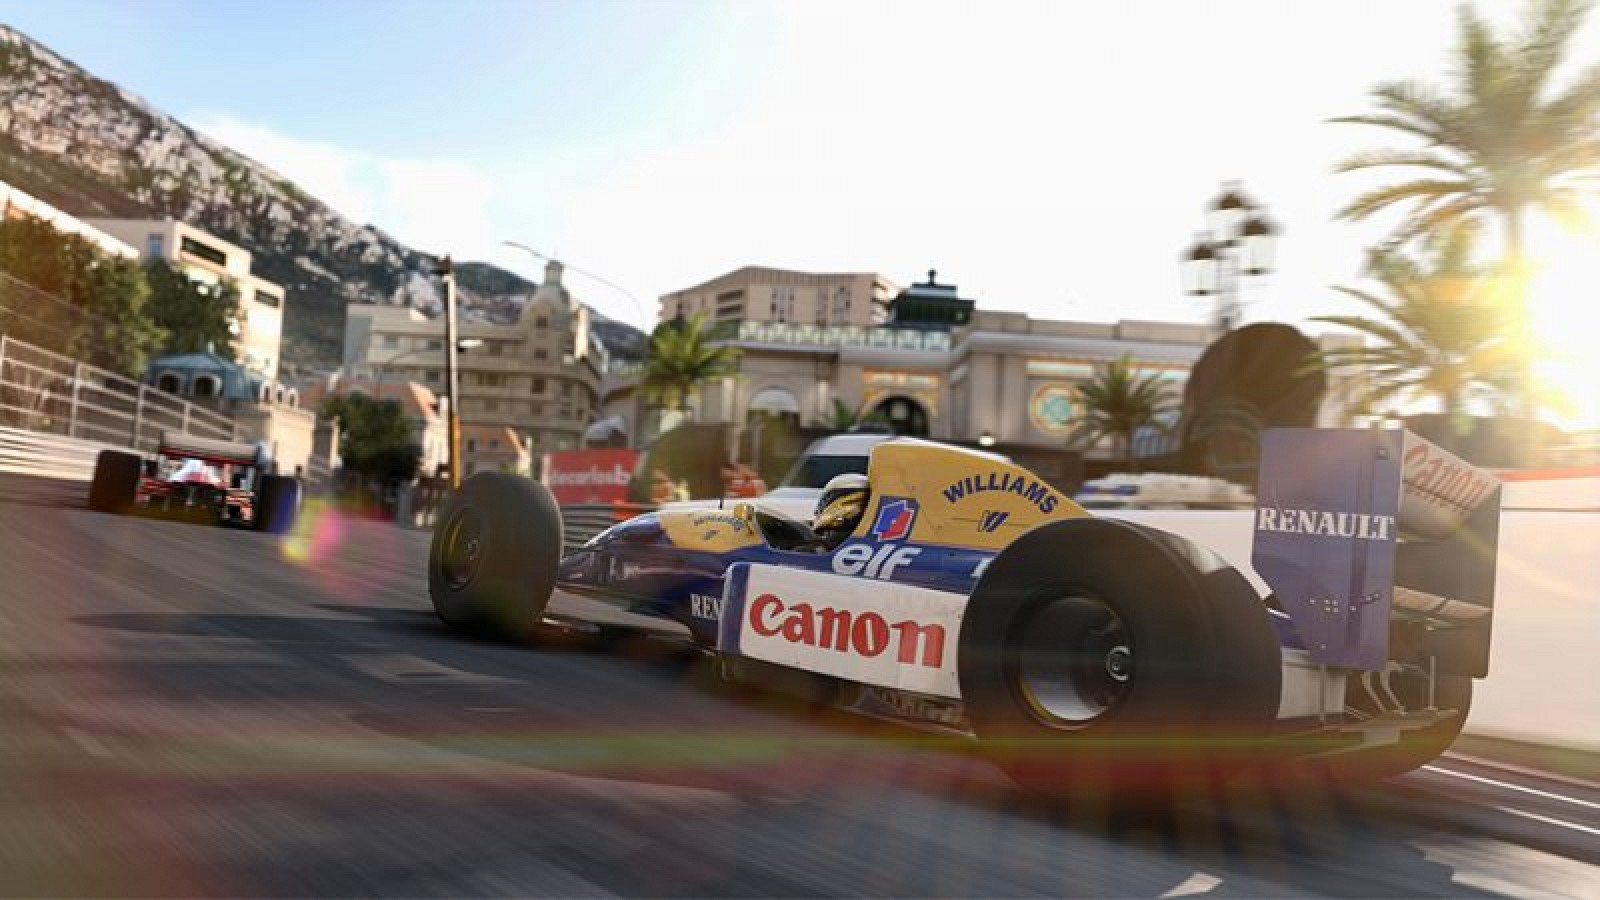 39 f1 2017 39 racing game now available from mac app store mac rumors. Black Bedroom Furniture Sets. Home Design Ideas